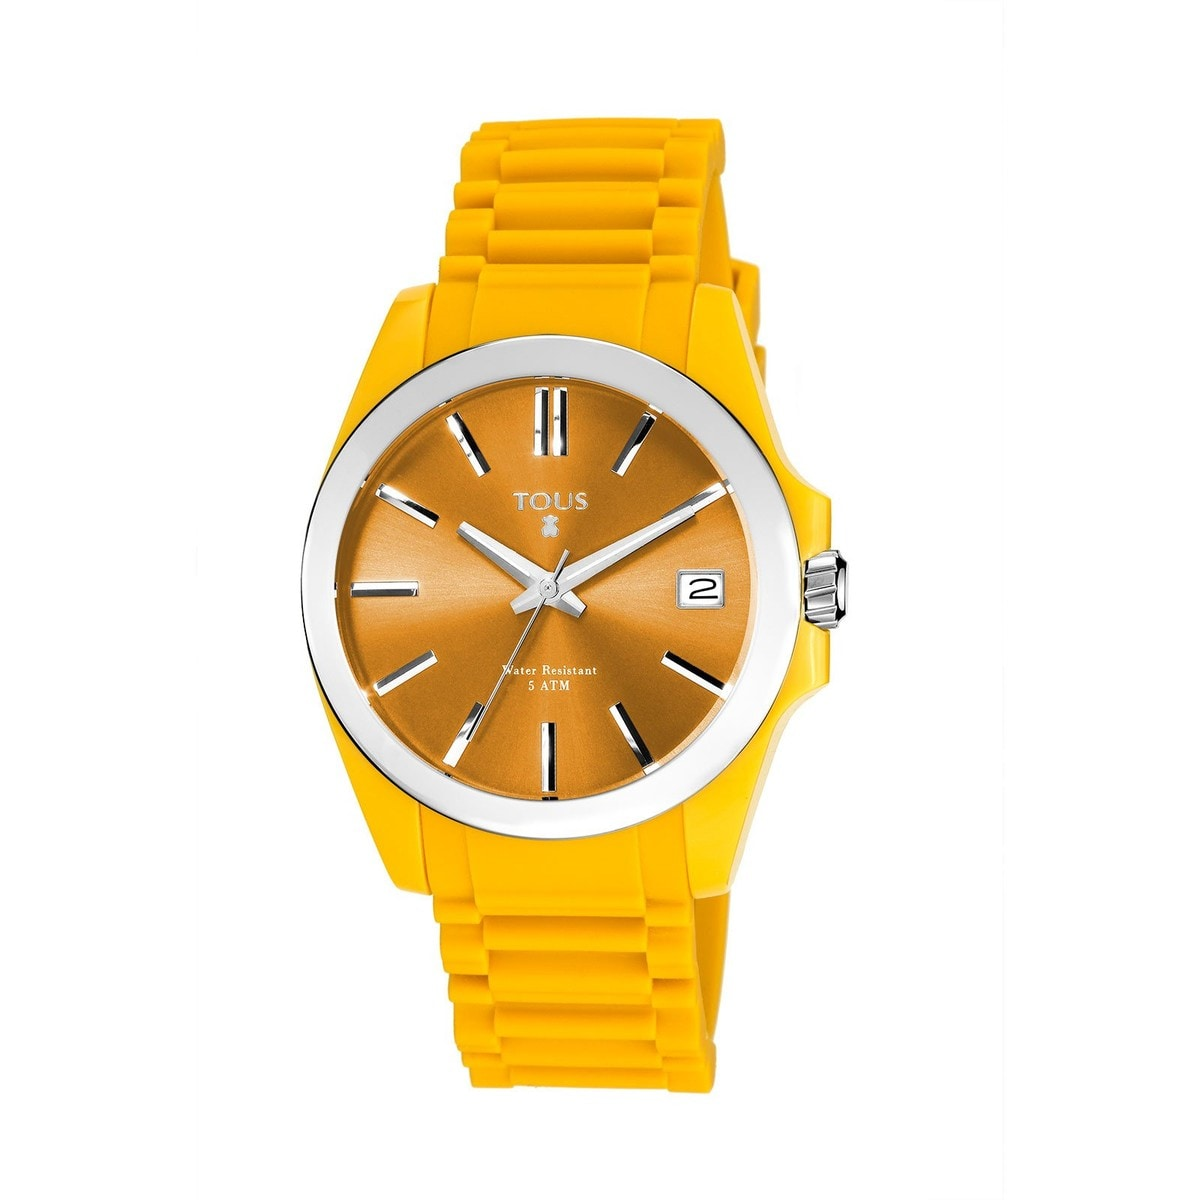 Steel Drive Fun Watch with banana colored Silicone strap